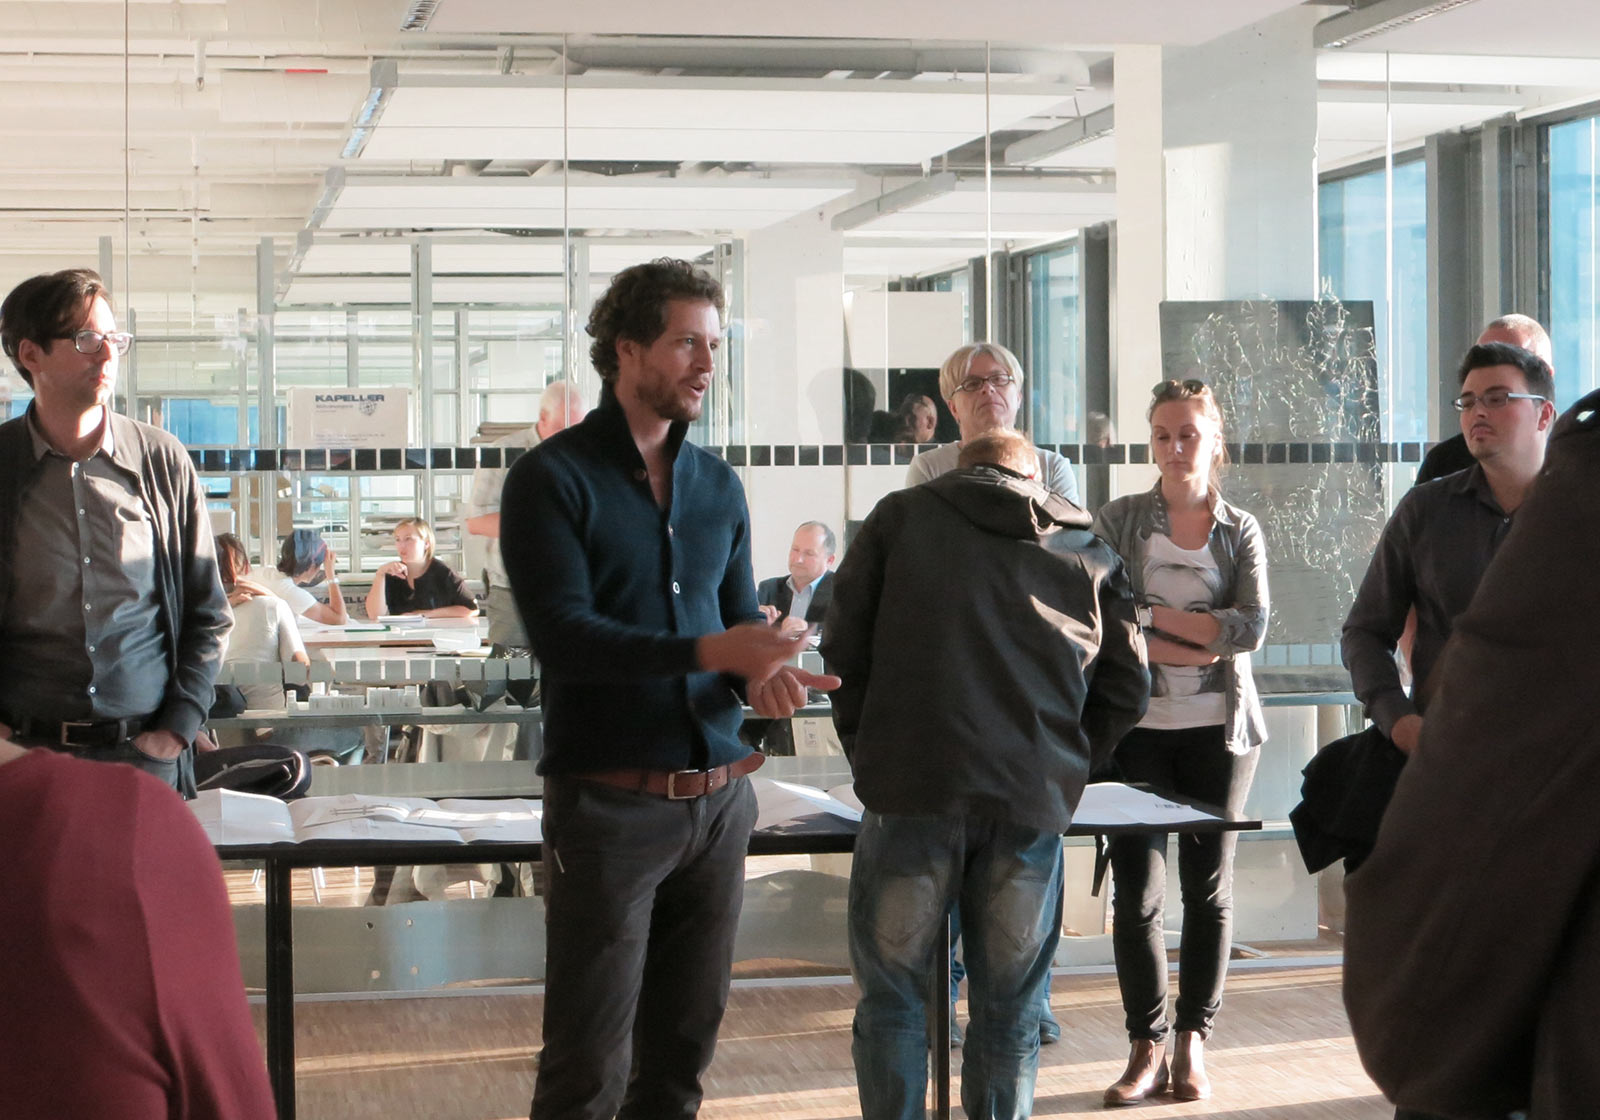 ATP architect Paul Ohnmacht answers questions from interested visitors. Photo: ATP